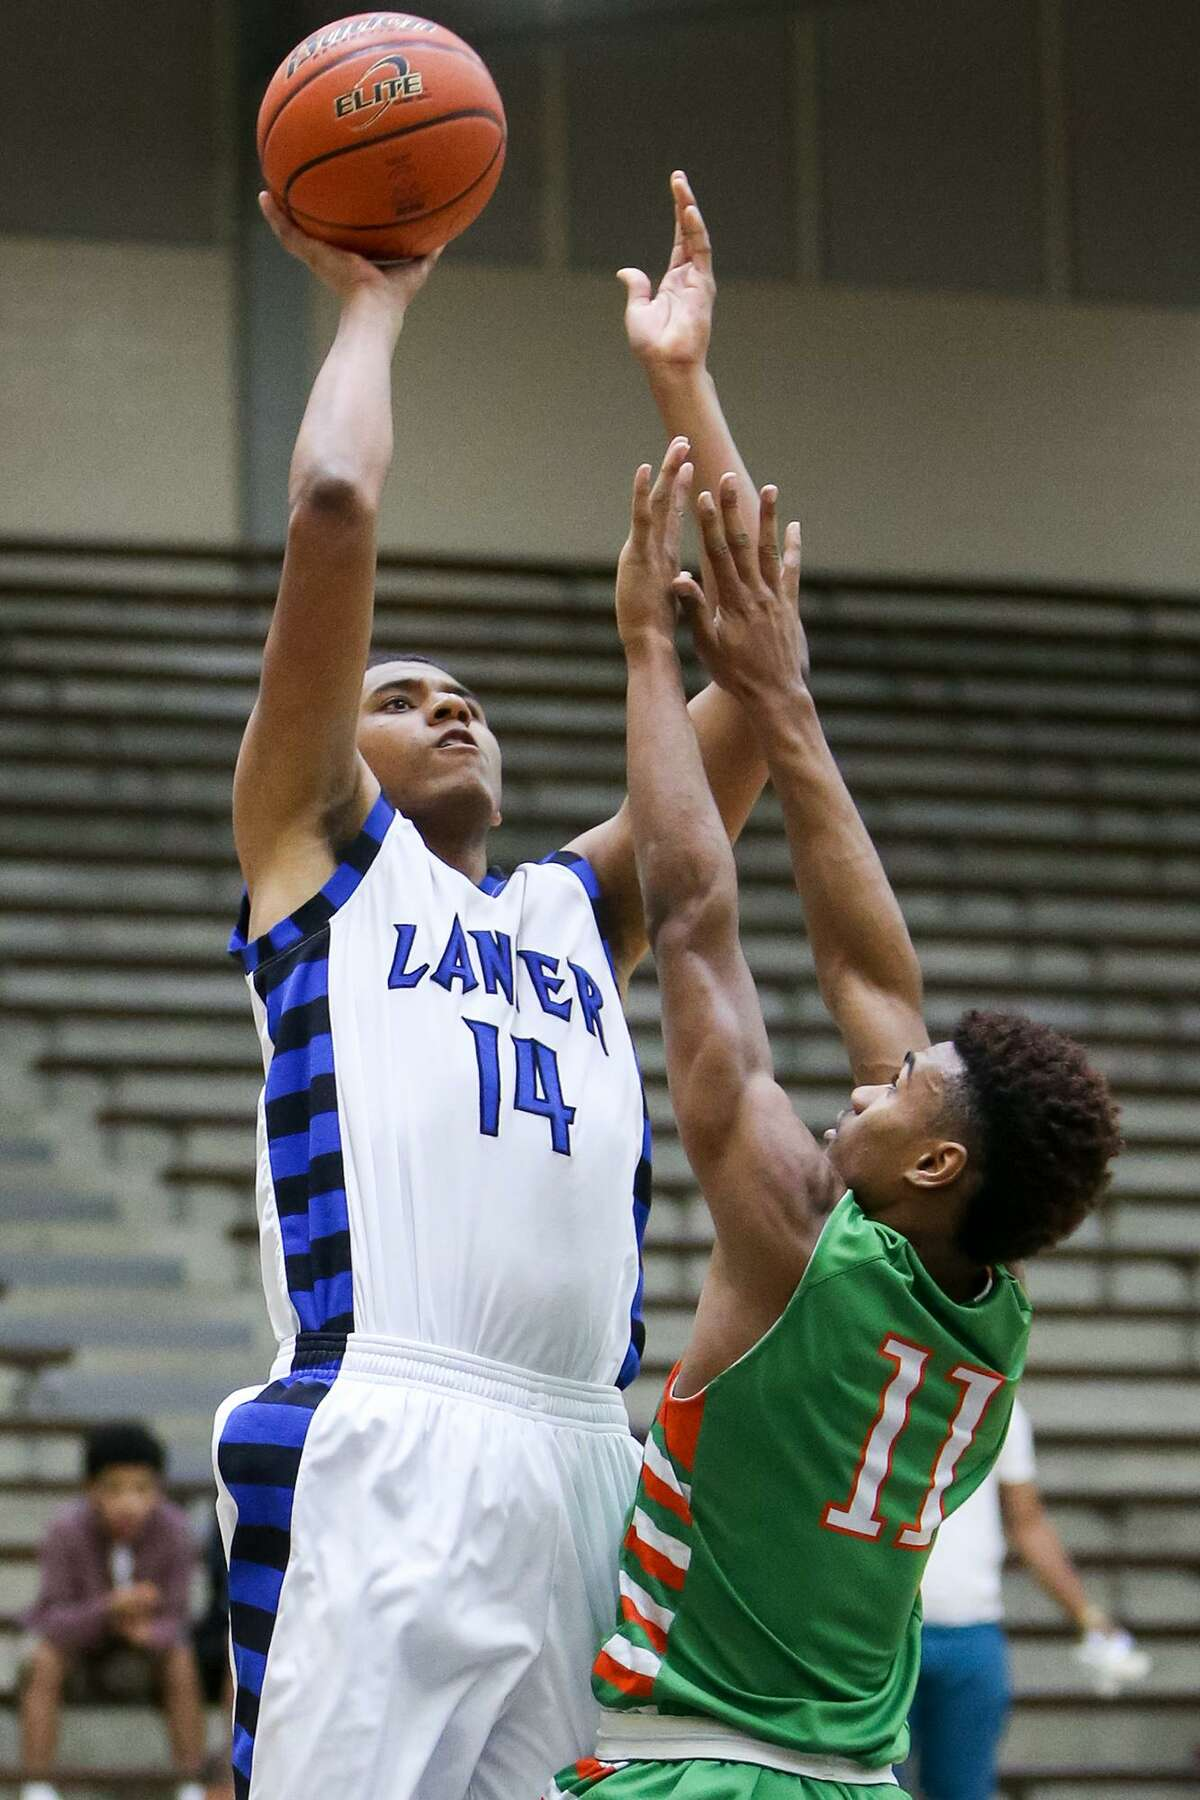 Lanier's Isaiah Vargas (left) shoots over Sam Houston's Juwan Anderson during the second half at the Alamo Convocation Center on Feb. 13, 2015.